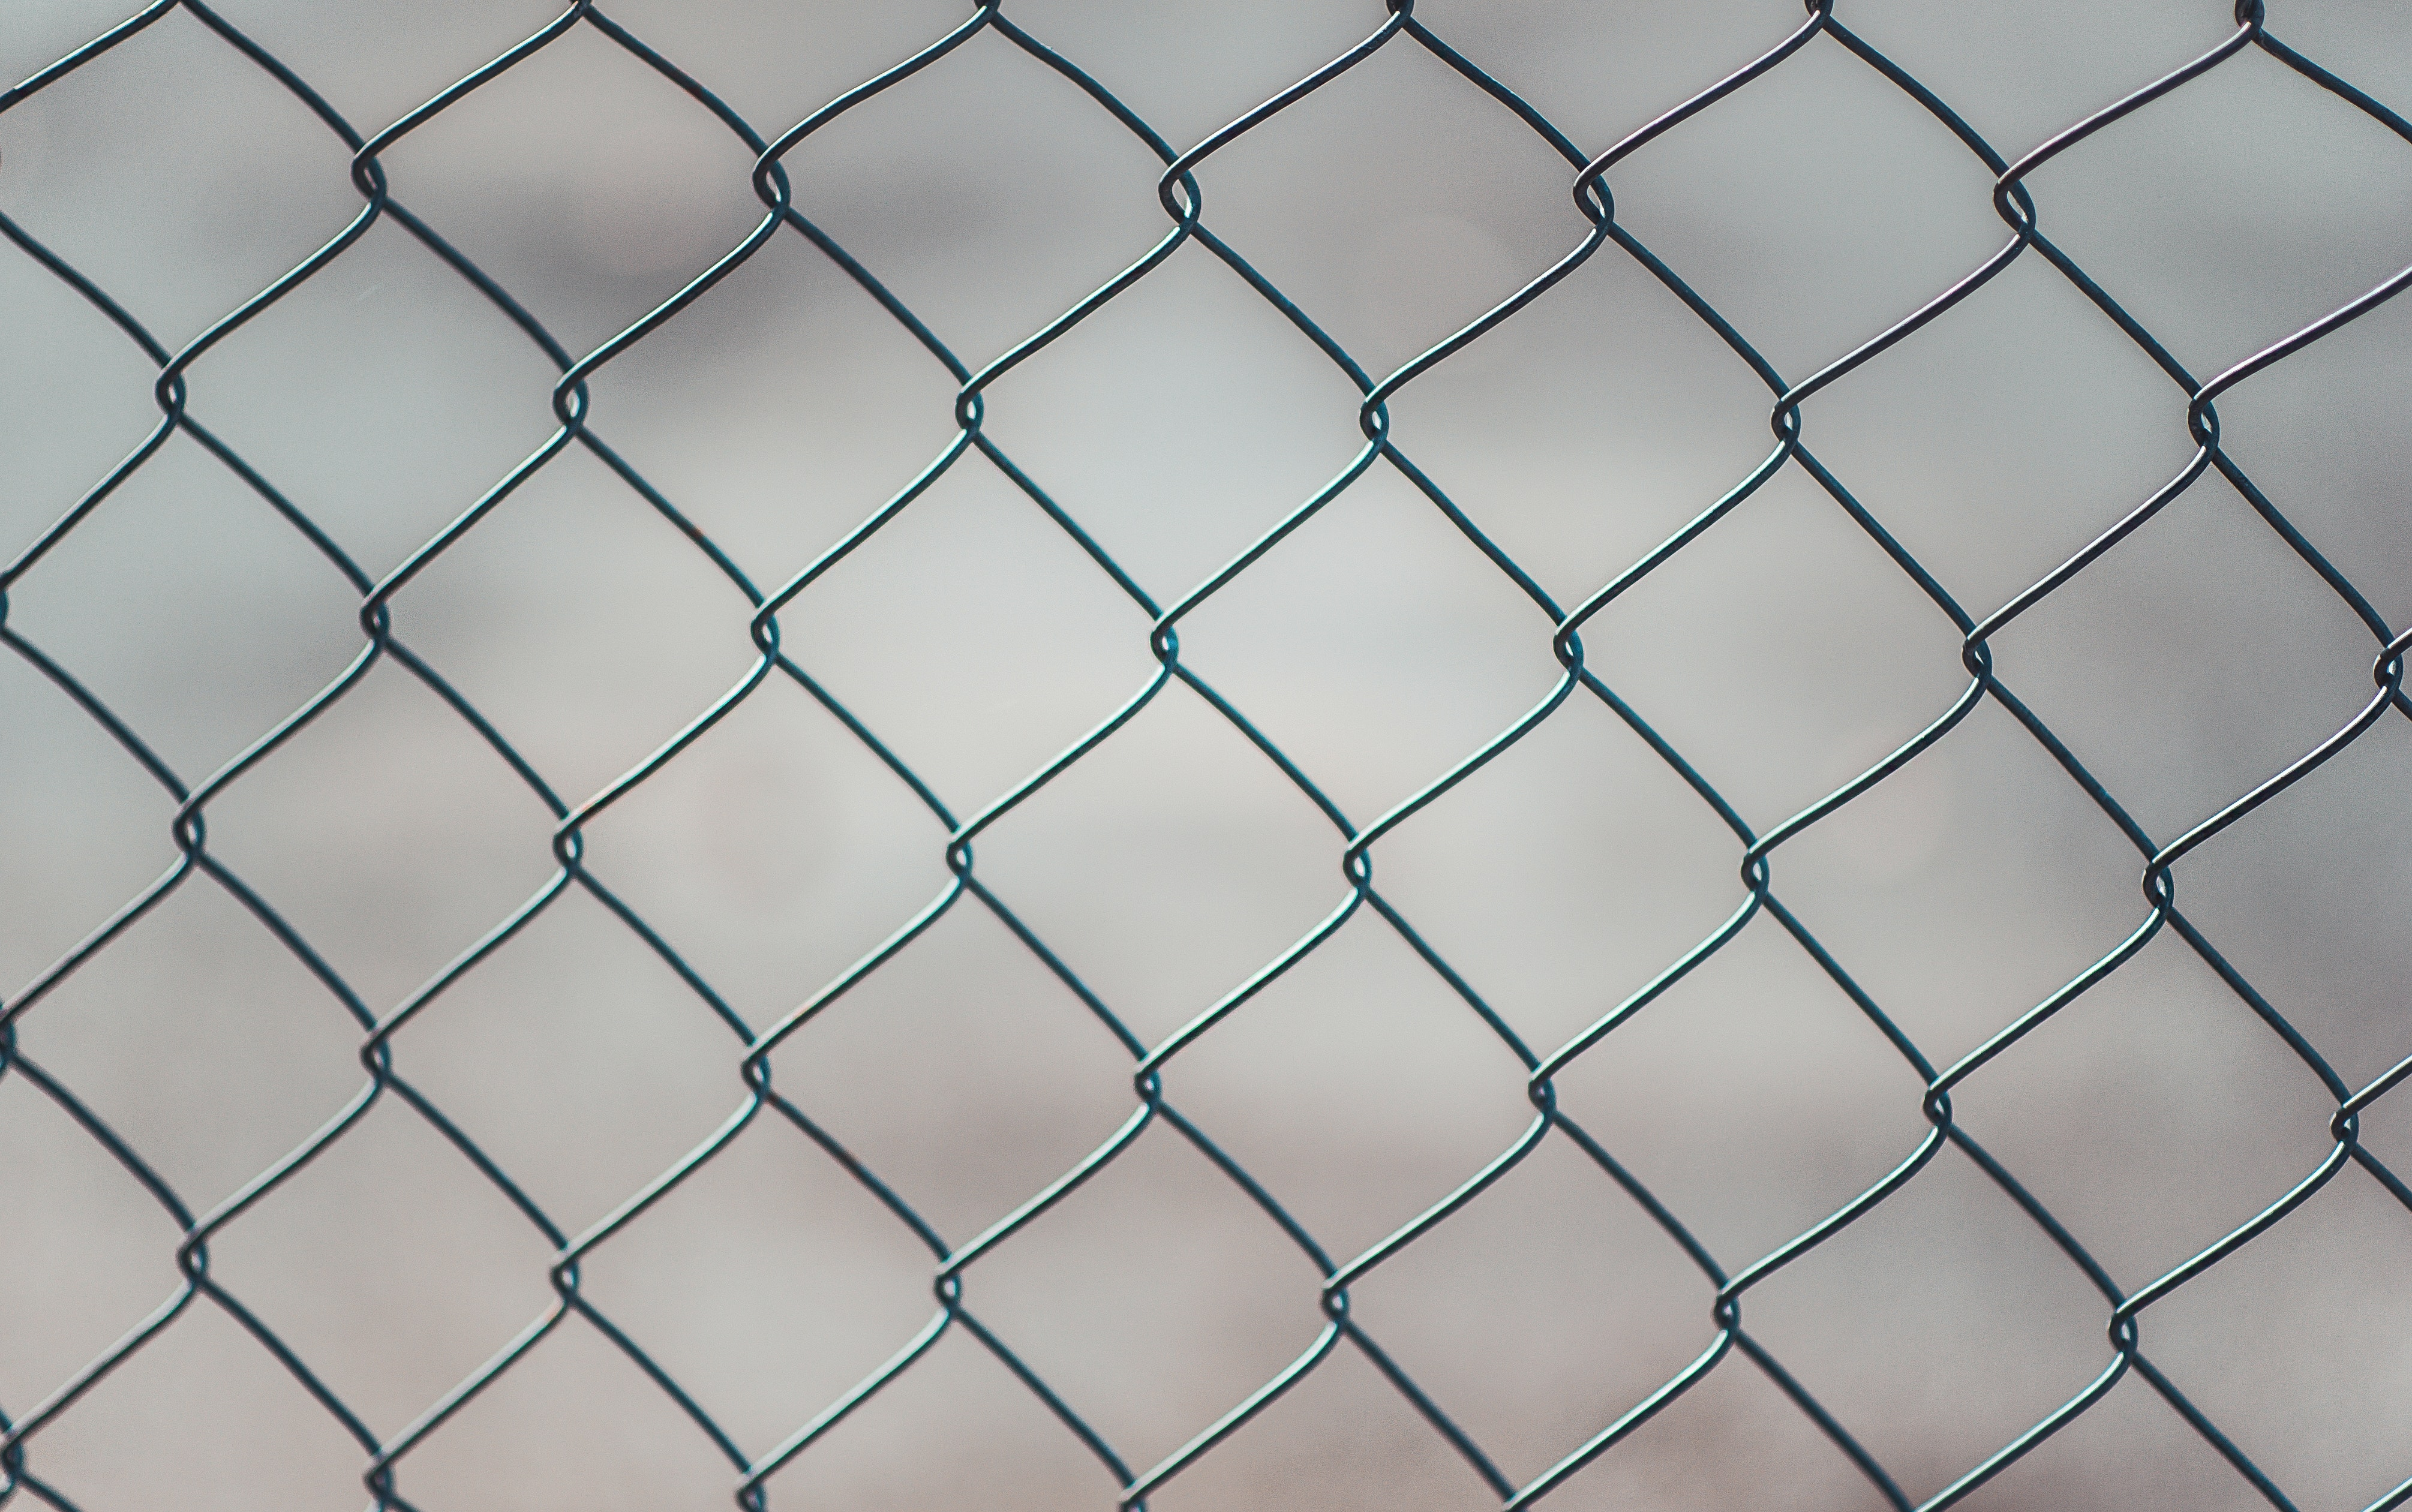 Chain Linked Fence · Free Stock Photo